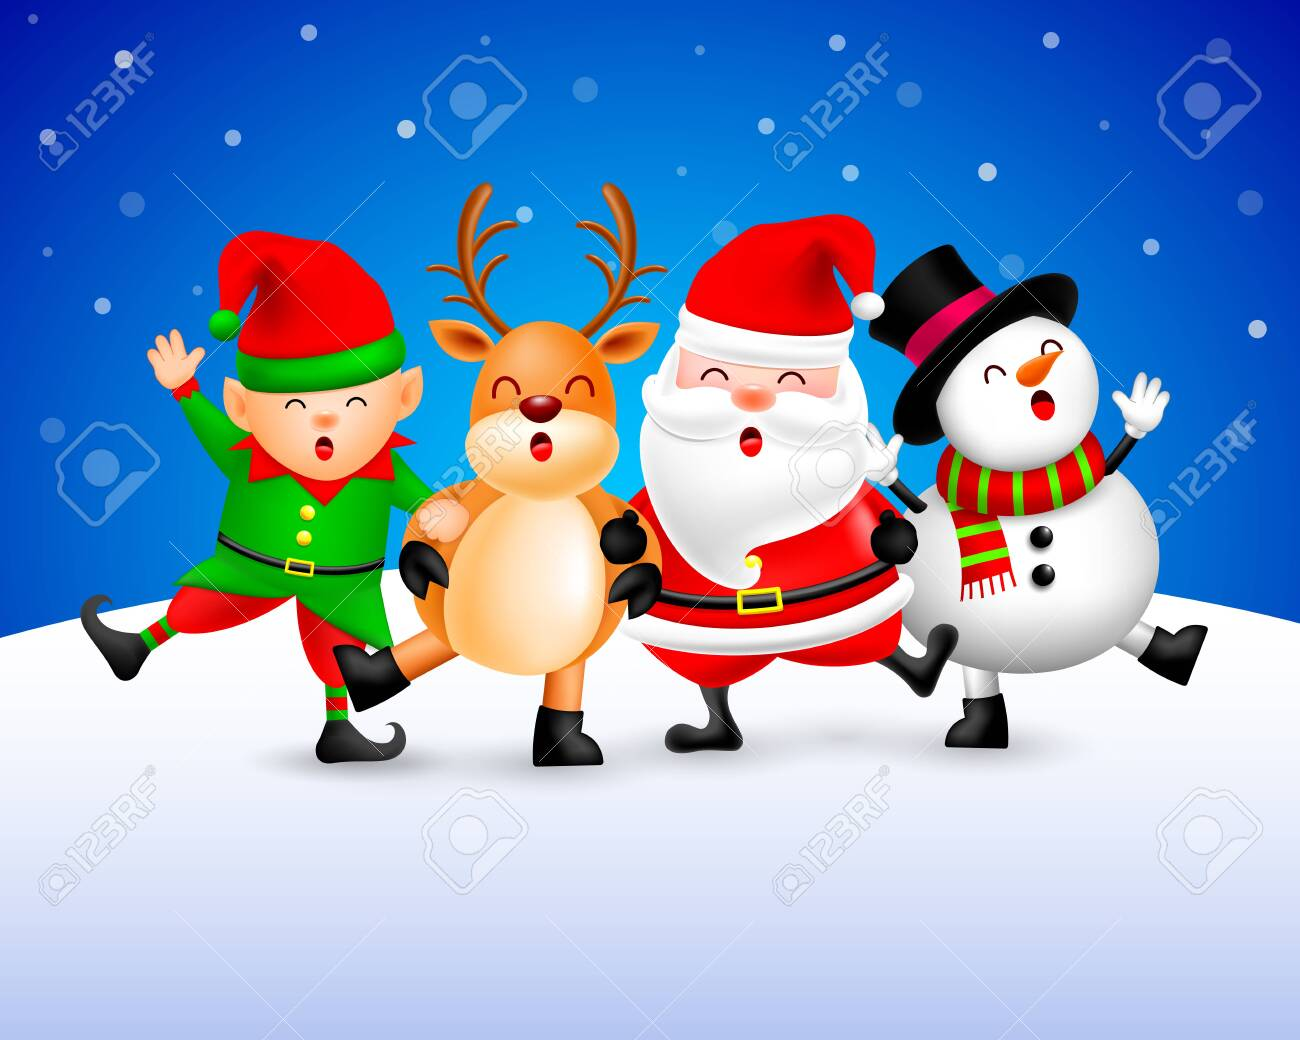 Funny Christmas Picture.Funny Christmas Characters Design On Snow Background Santa Claus